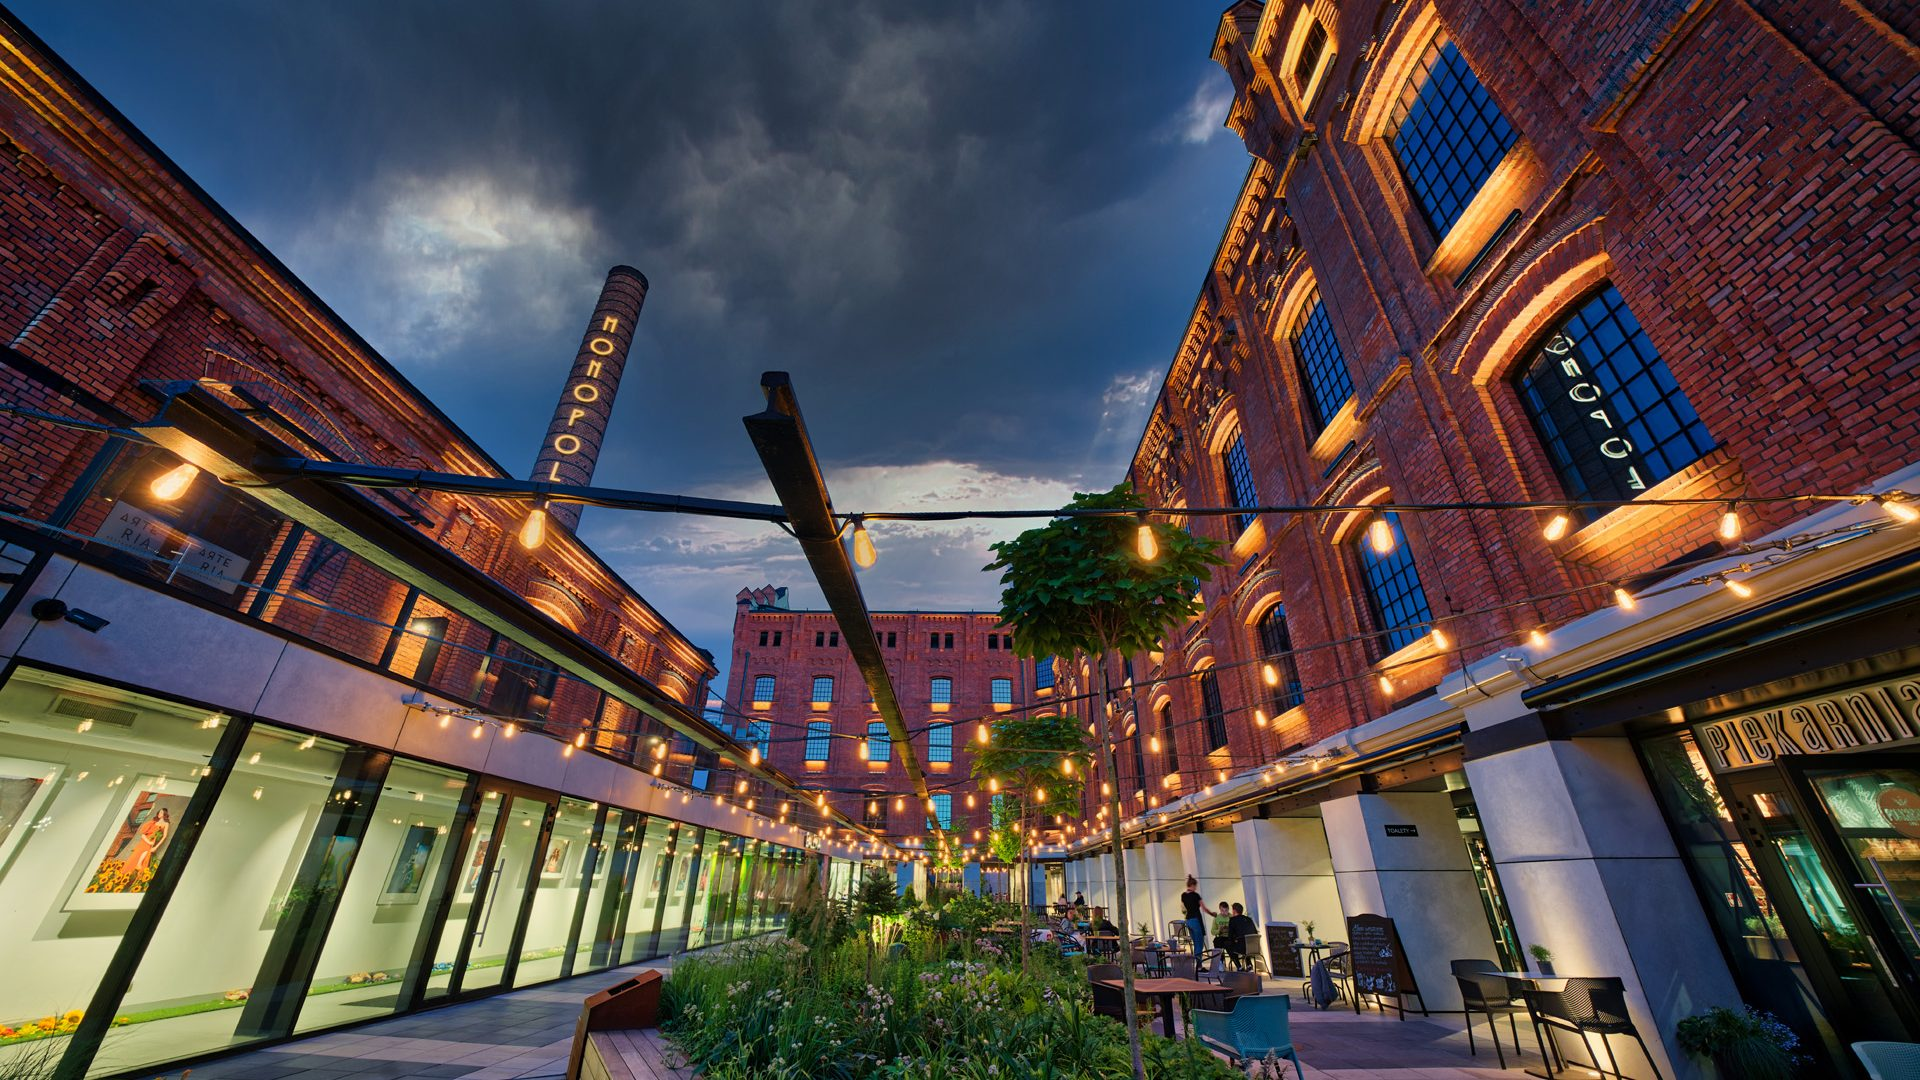 Monopolis in Łódź, the former vodka factory which won Best Mixed-Use Project at the MIPIM Awards, taking the city's tally to two